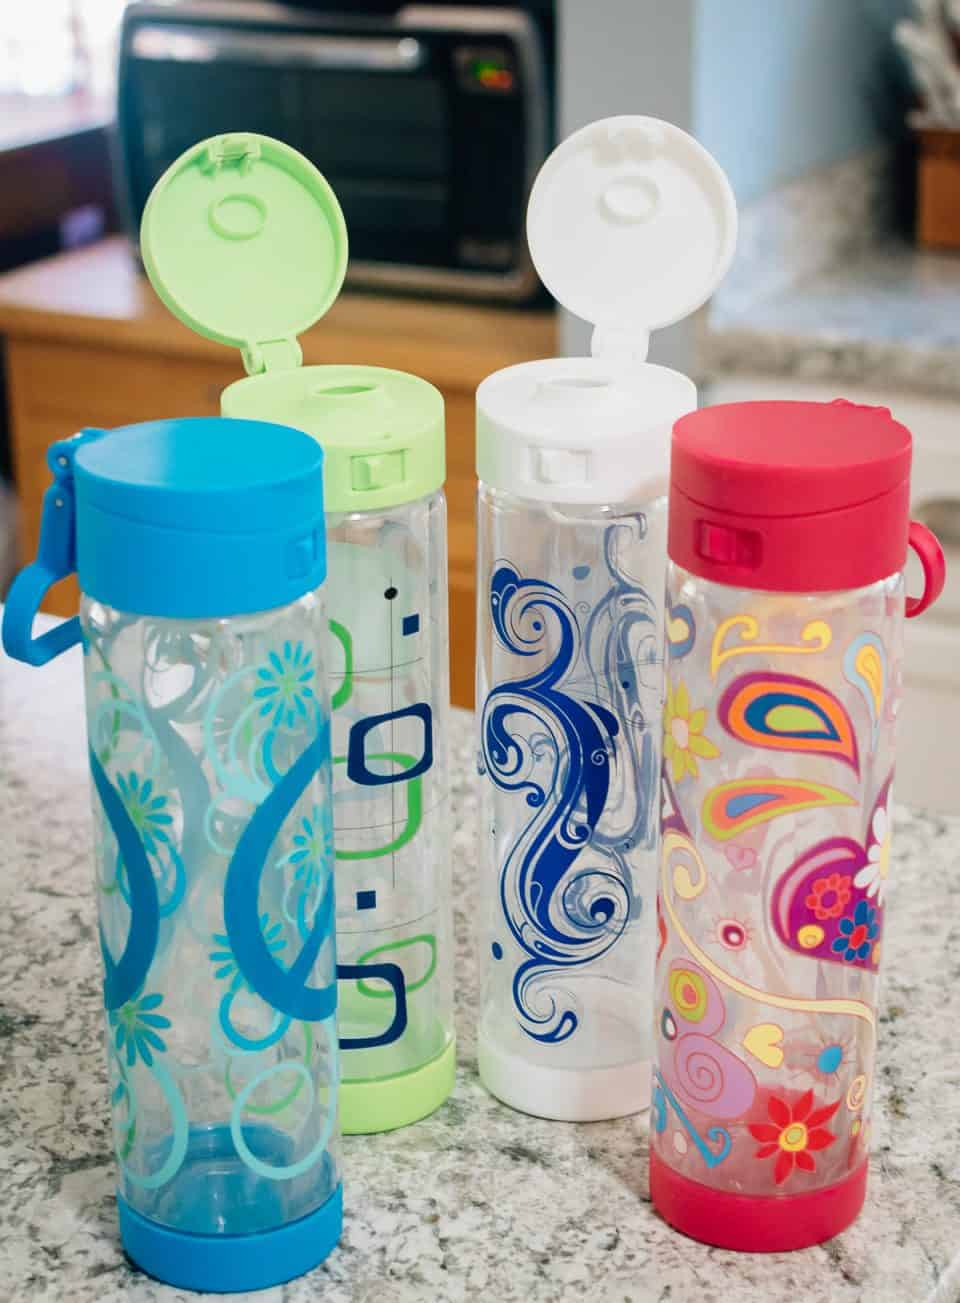 Daily Mom parents portal holiday glasstic water bottle Fitness gifts for her